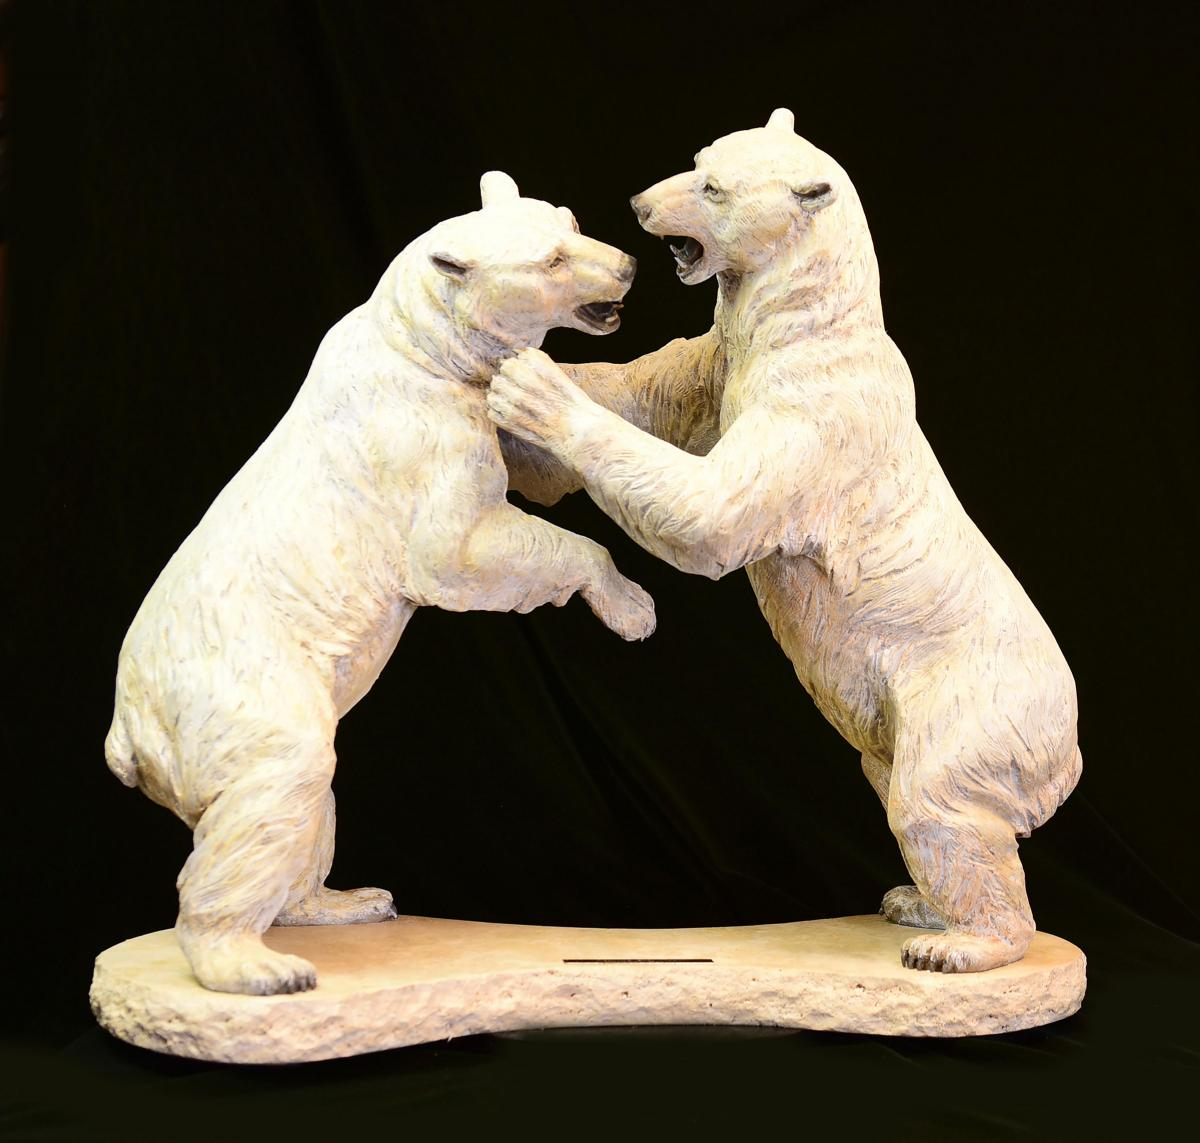 Sealing the Deal | Sculpture by Christine Knapp | Artists for Conservation 2020